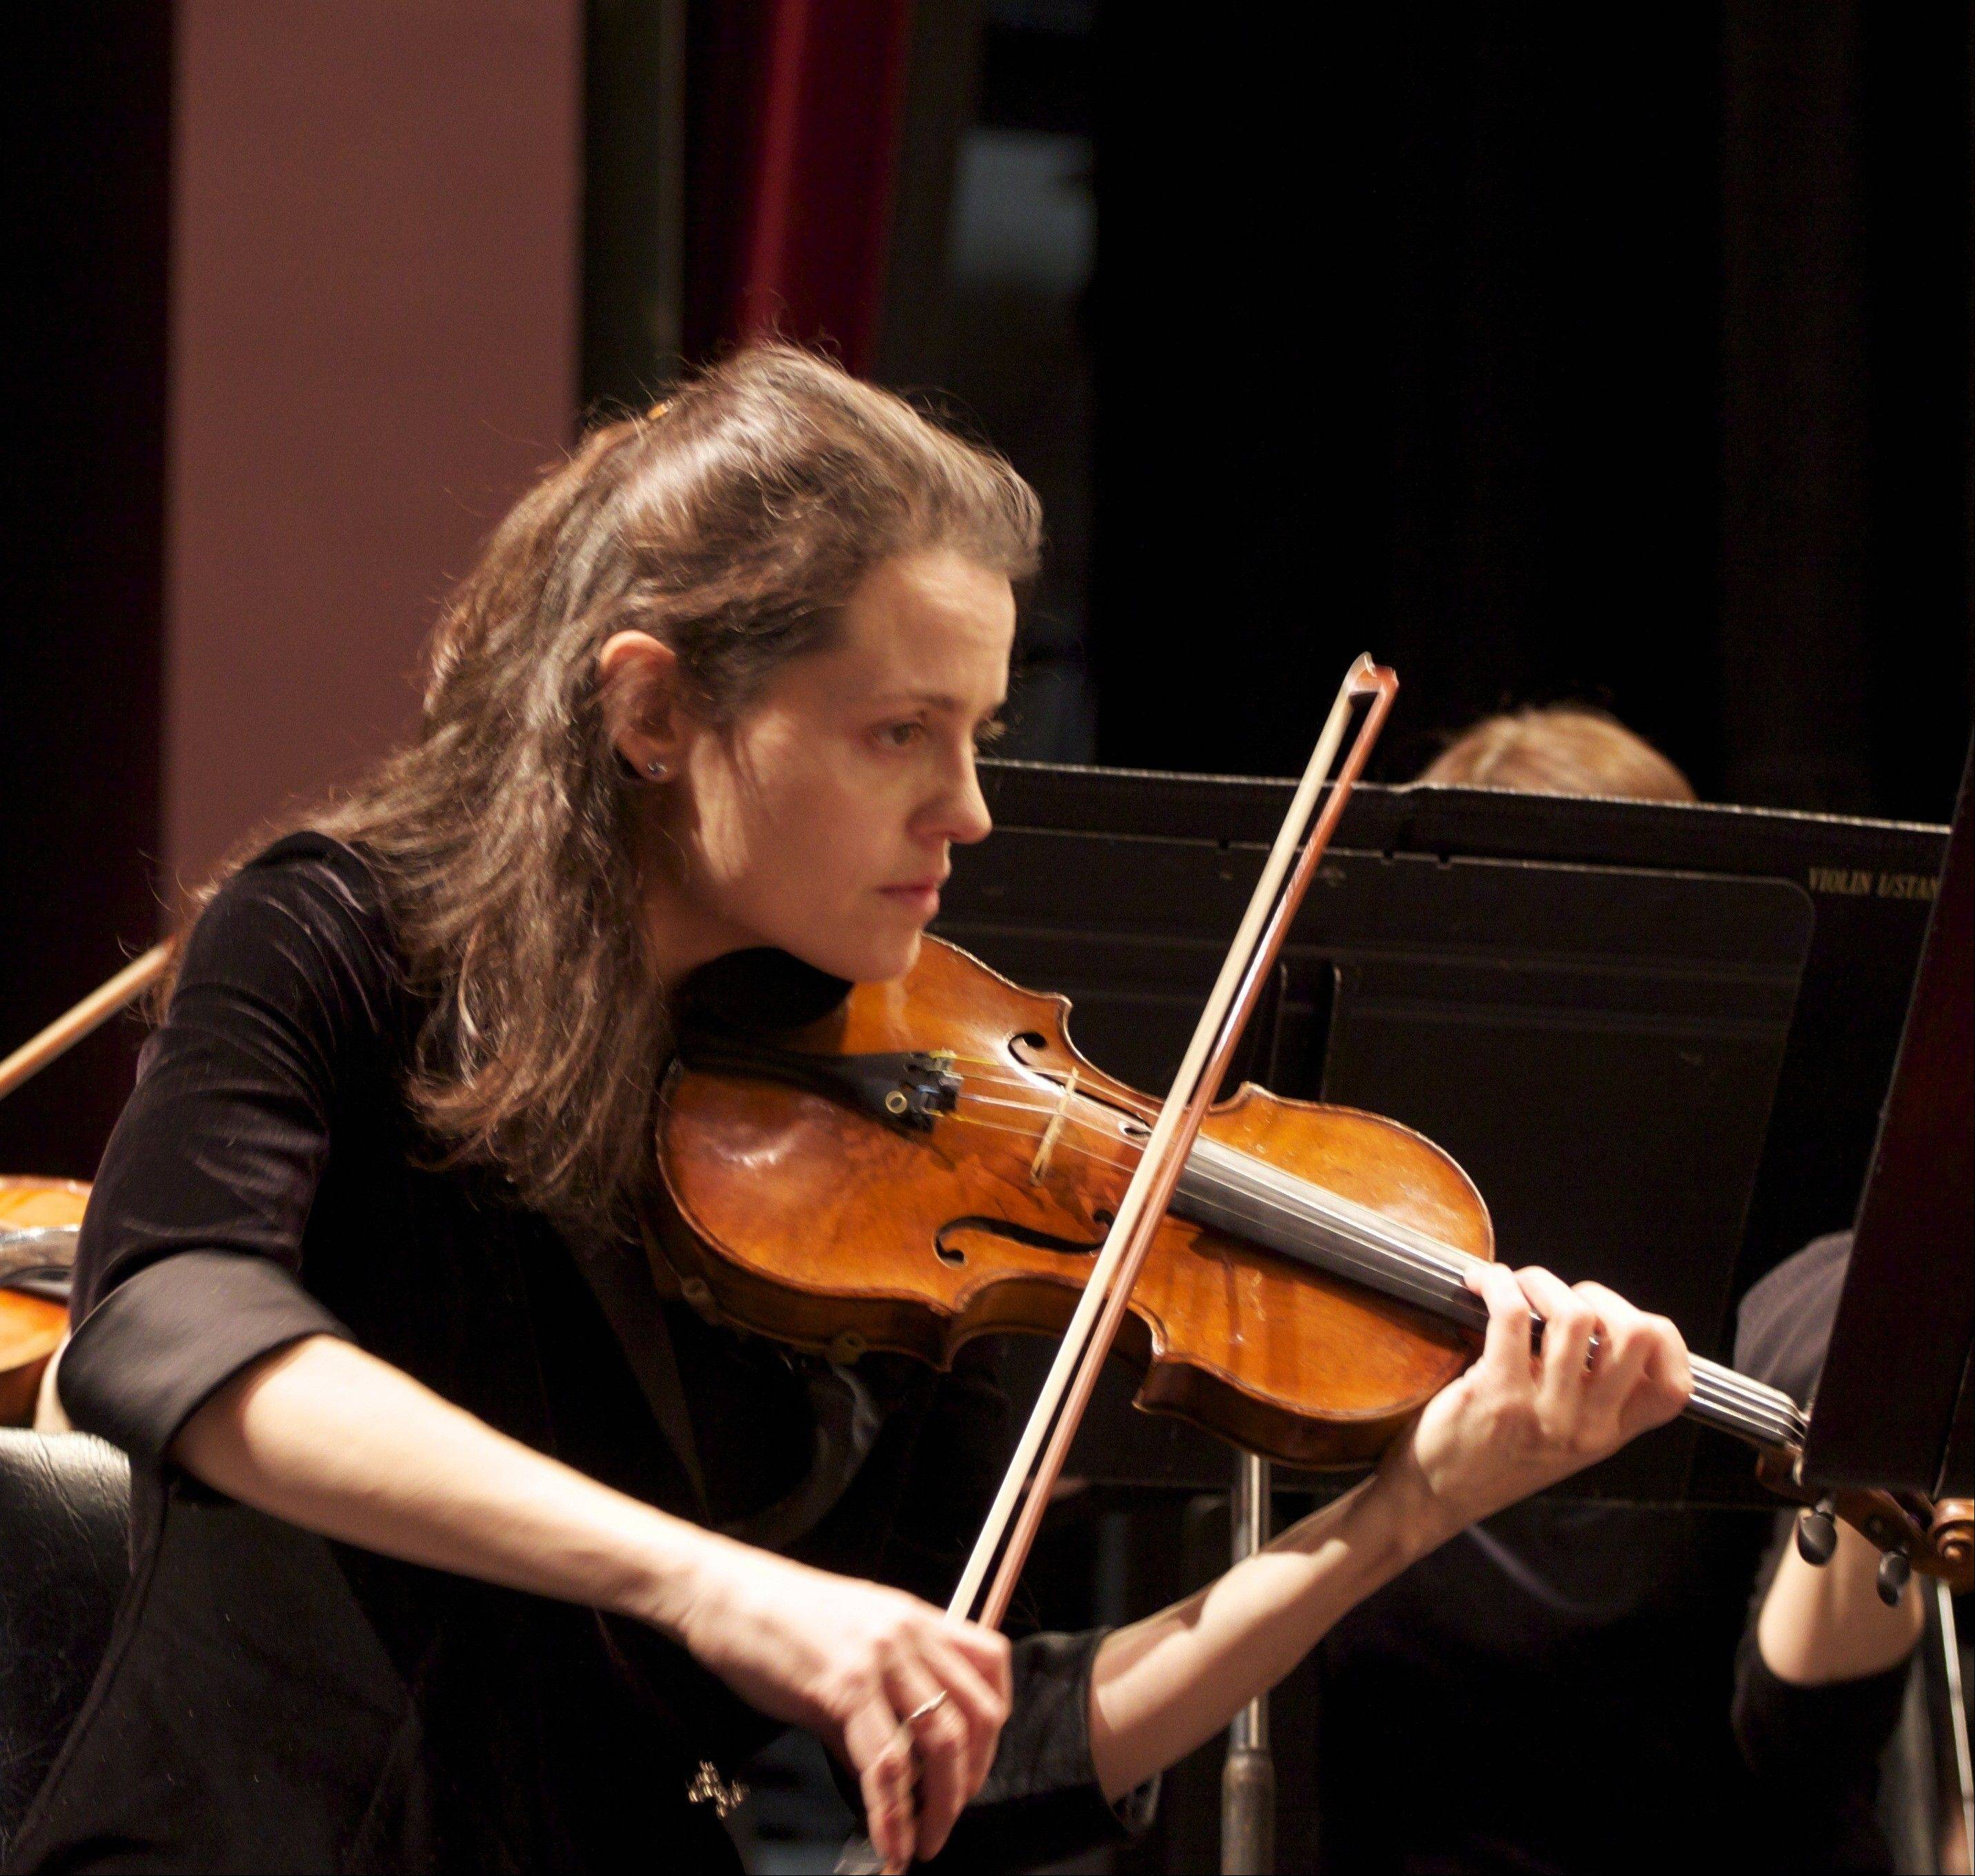 Violin soloist Isabella Lippi performs with the Elgin Symphony Orchestra this weekend at the Hemmens Cultural Center in Elgin.